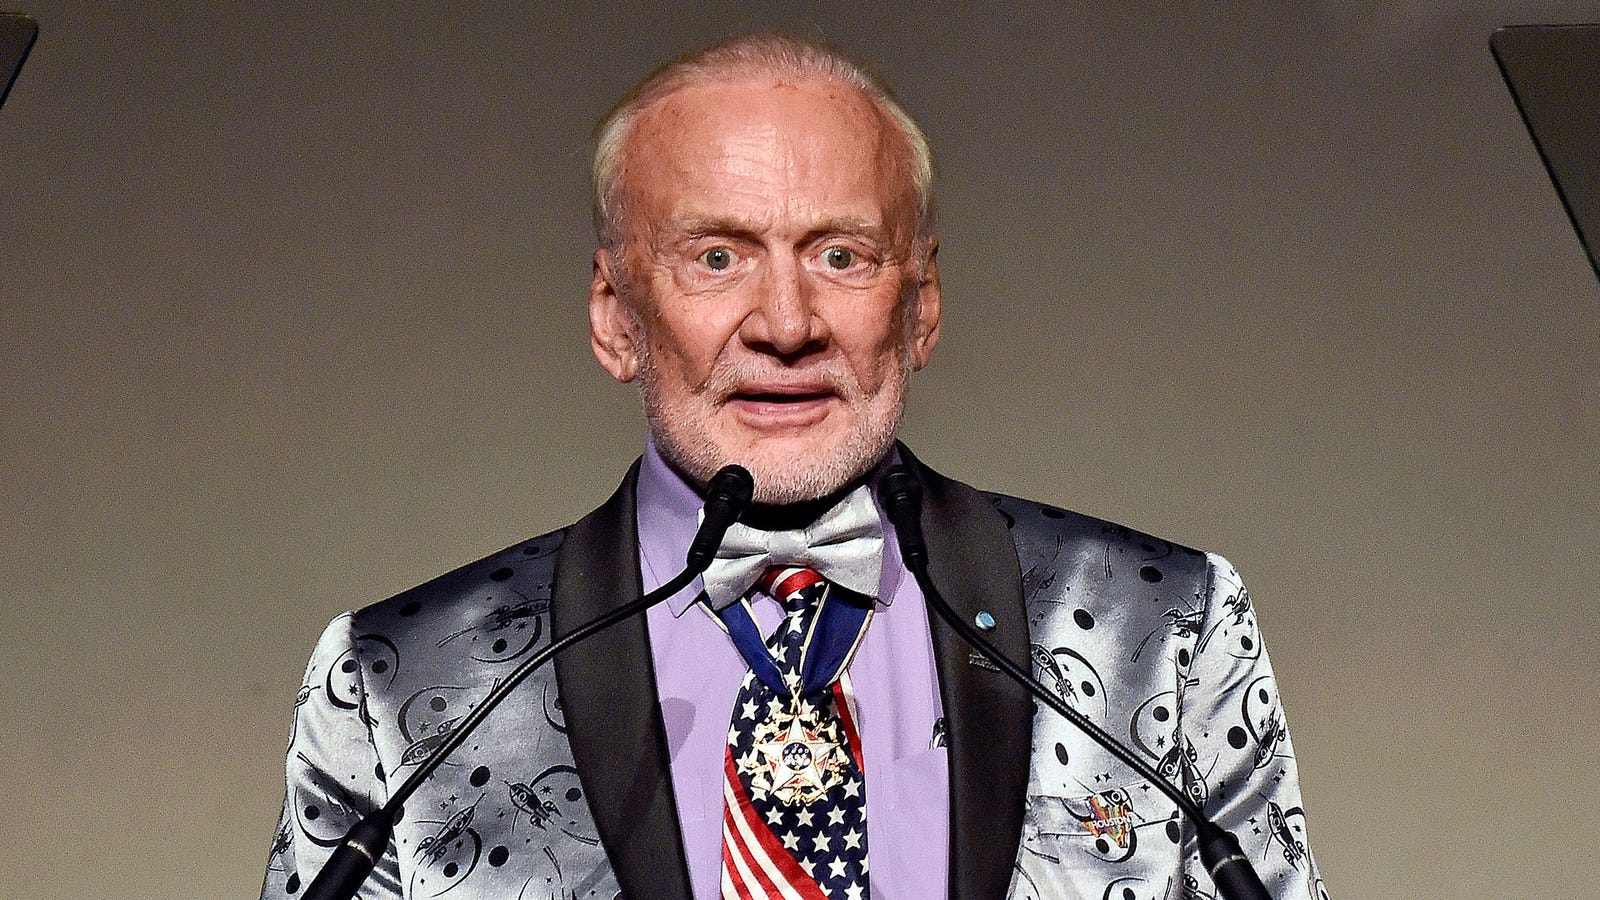 Better Late Than Never: Buzz Aldrin Has Announced That He Forgot To Tell Anyone He Saw A Fox On The Moon